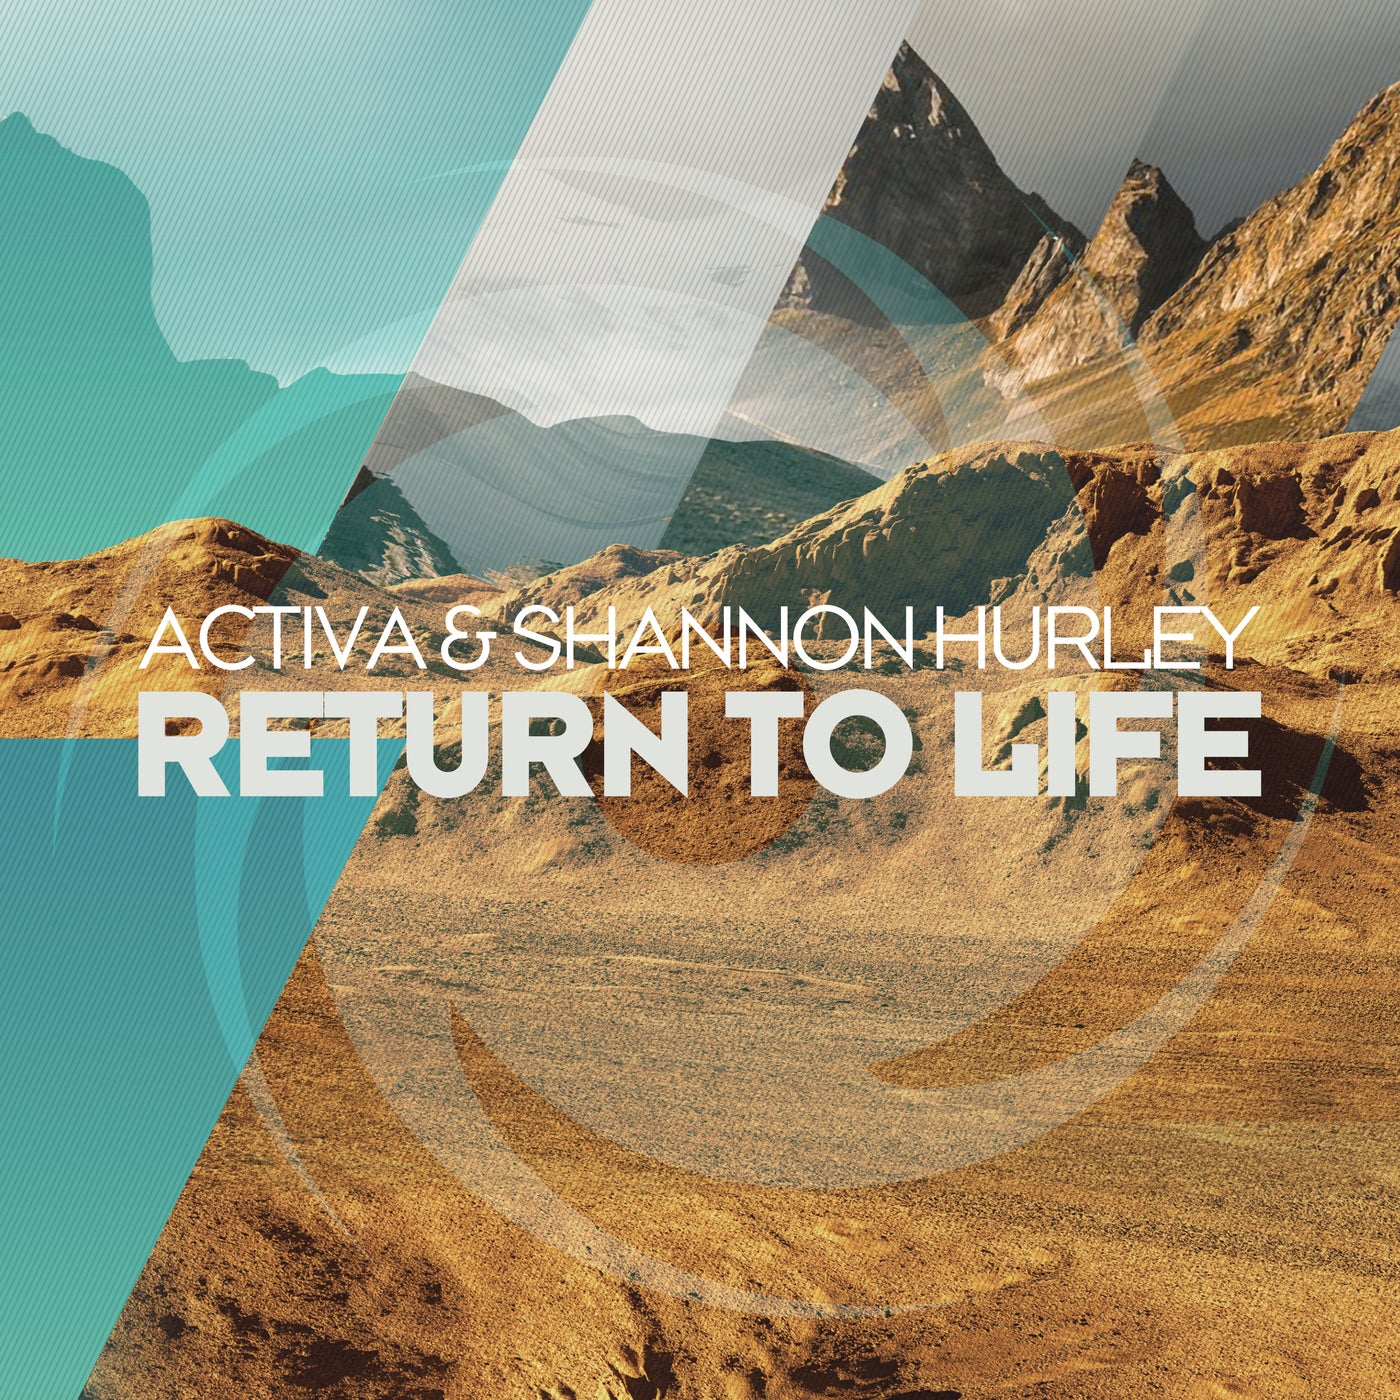 Return to Life (Extended Mix)